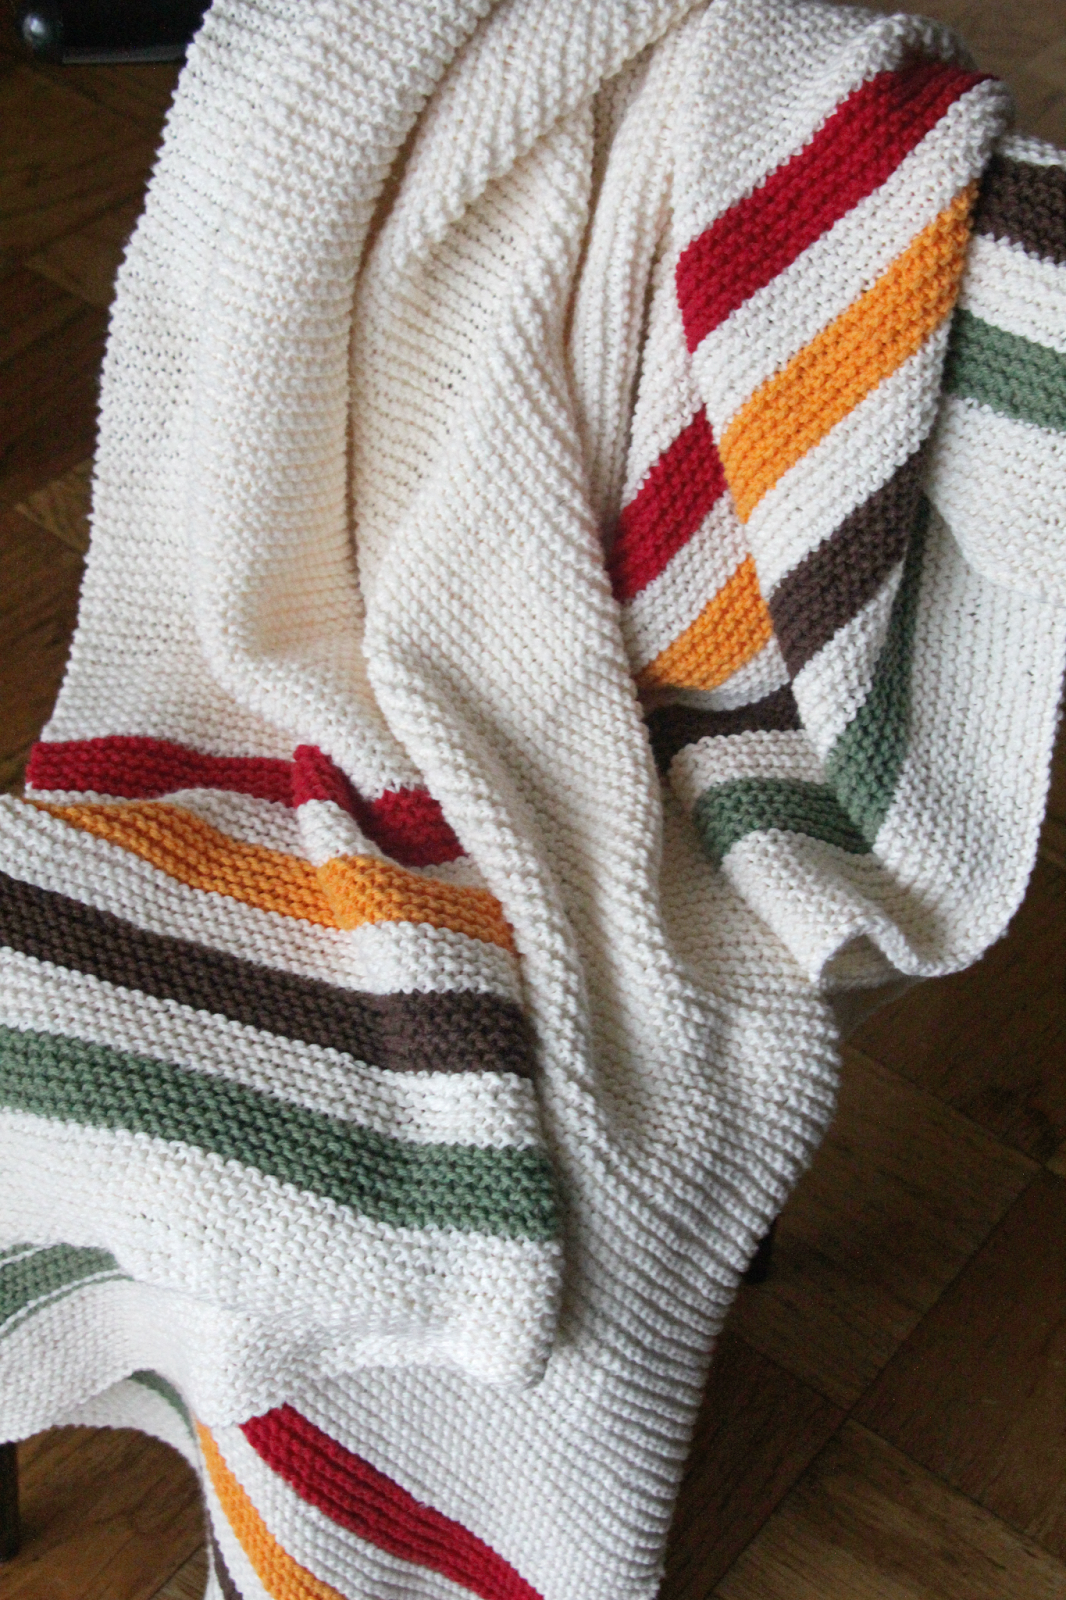 Knitting Pattern For Hudson Bay Blanket : The Fuzzy Square: Nine Months with My Simple Striped Blanket